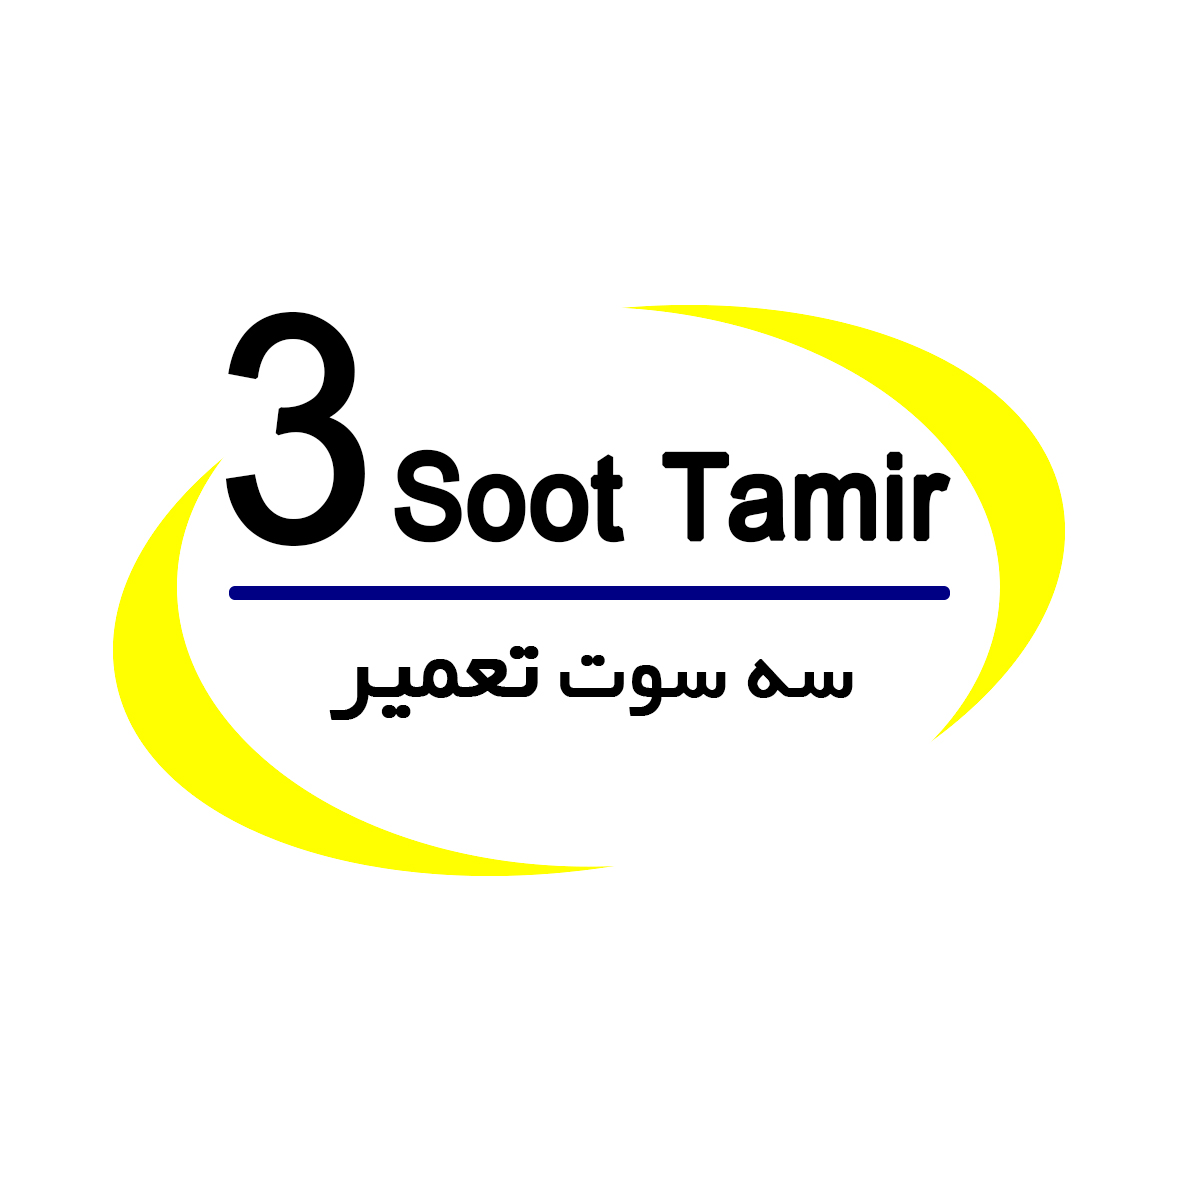 3soot